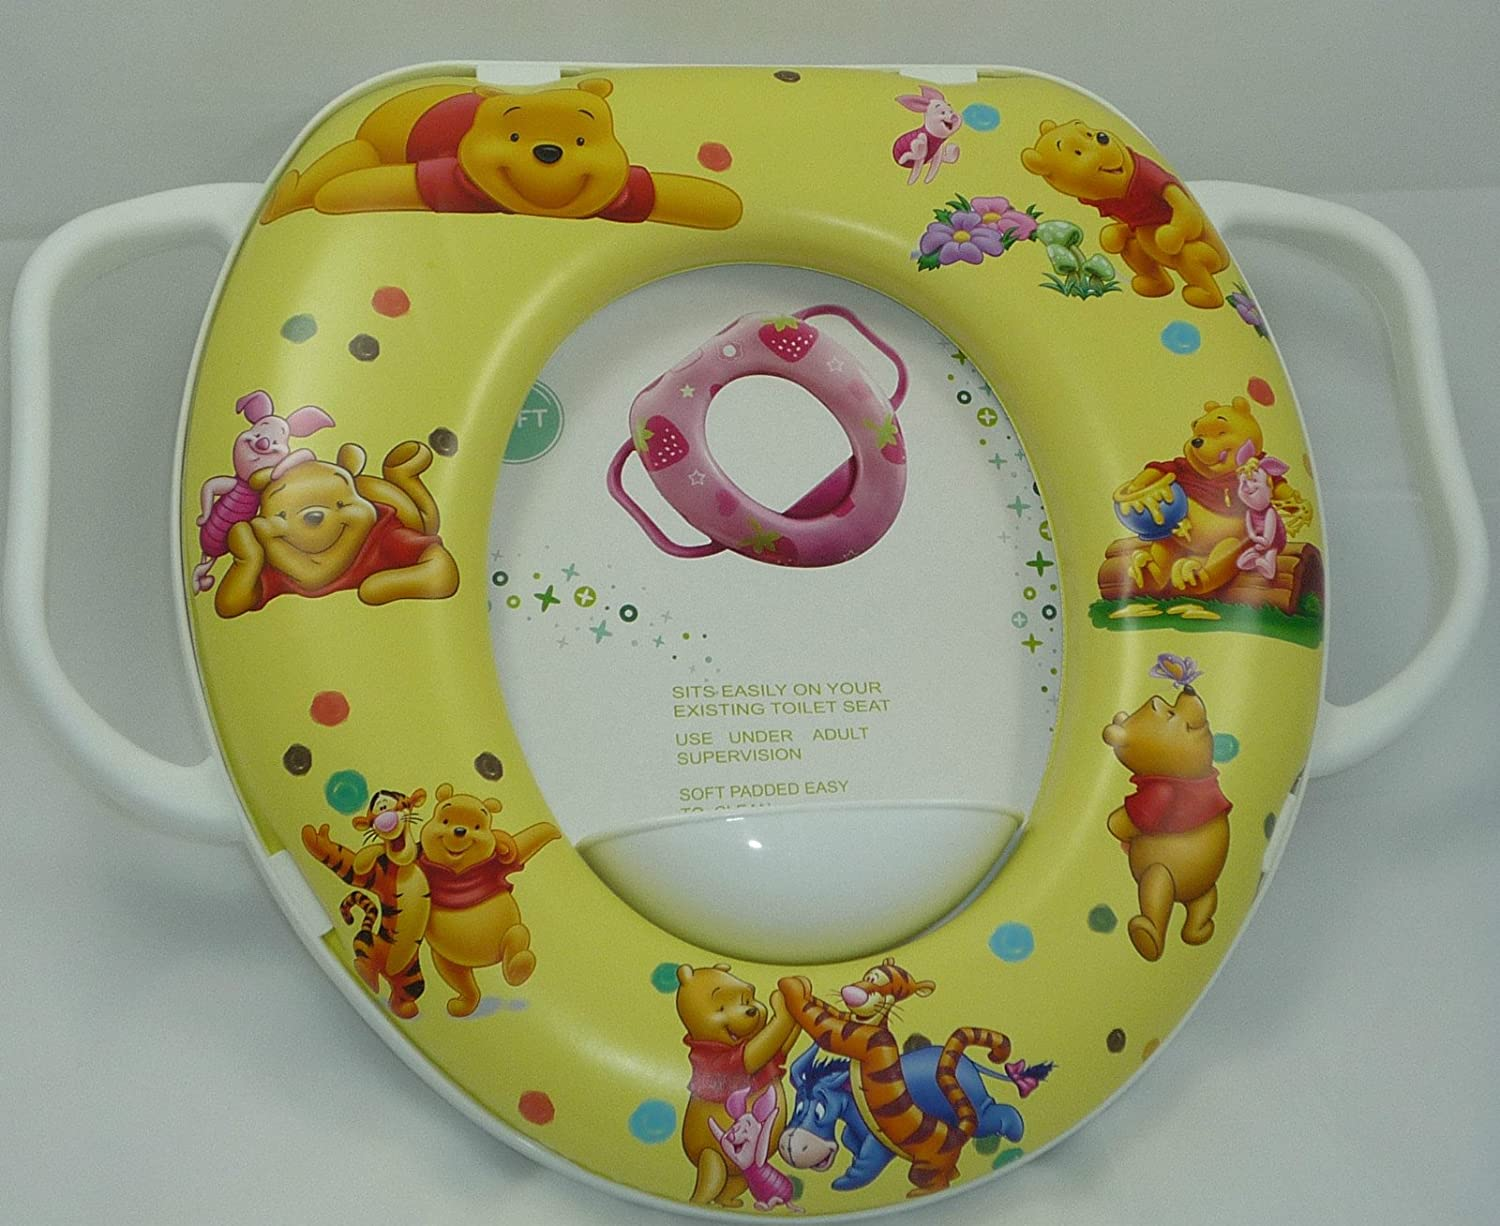 Baby Soft Padded Potty Training Toilet Seat With Handles Suitable for standard oval toilet seats with hole measure around 27cmX21Cm Winnie The Pooh /& Tigger.